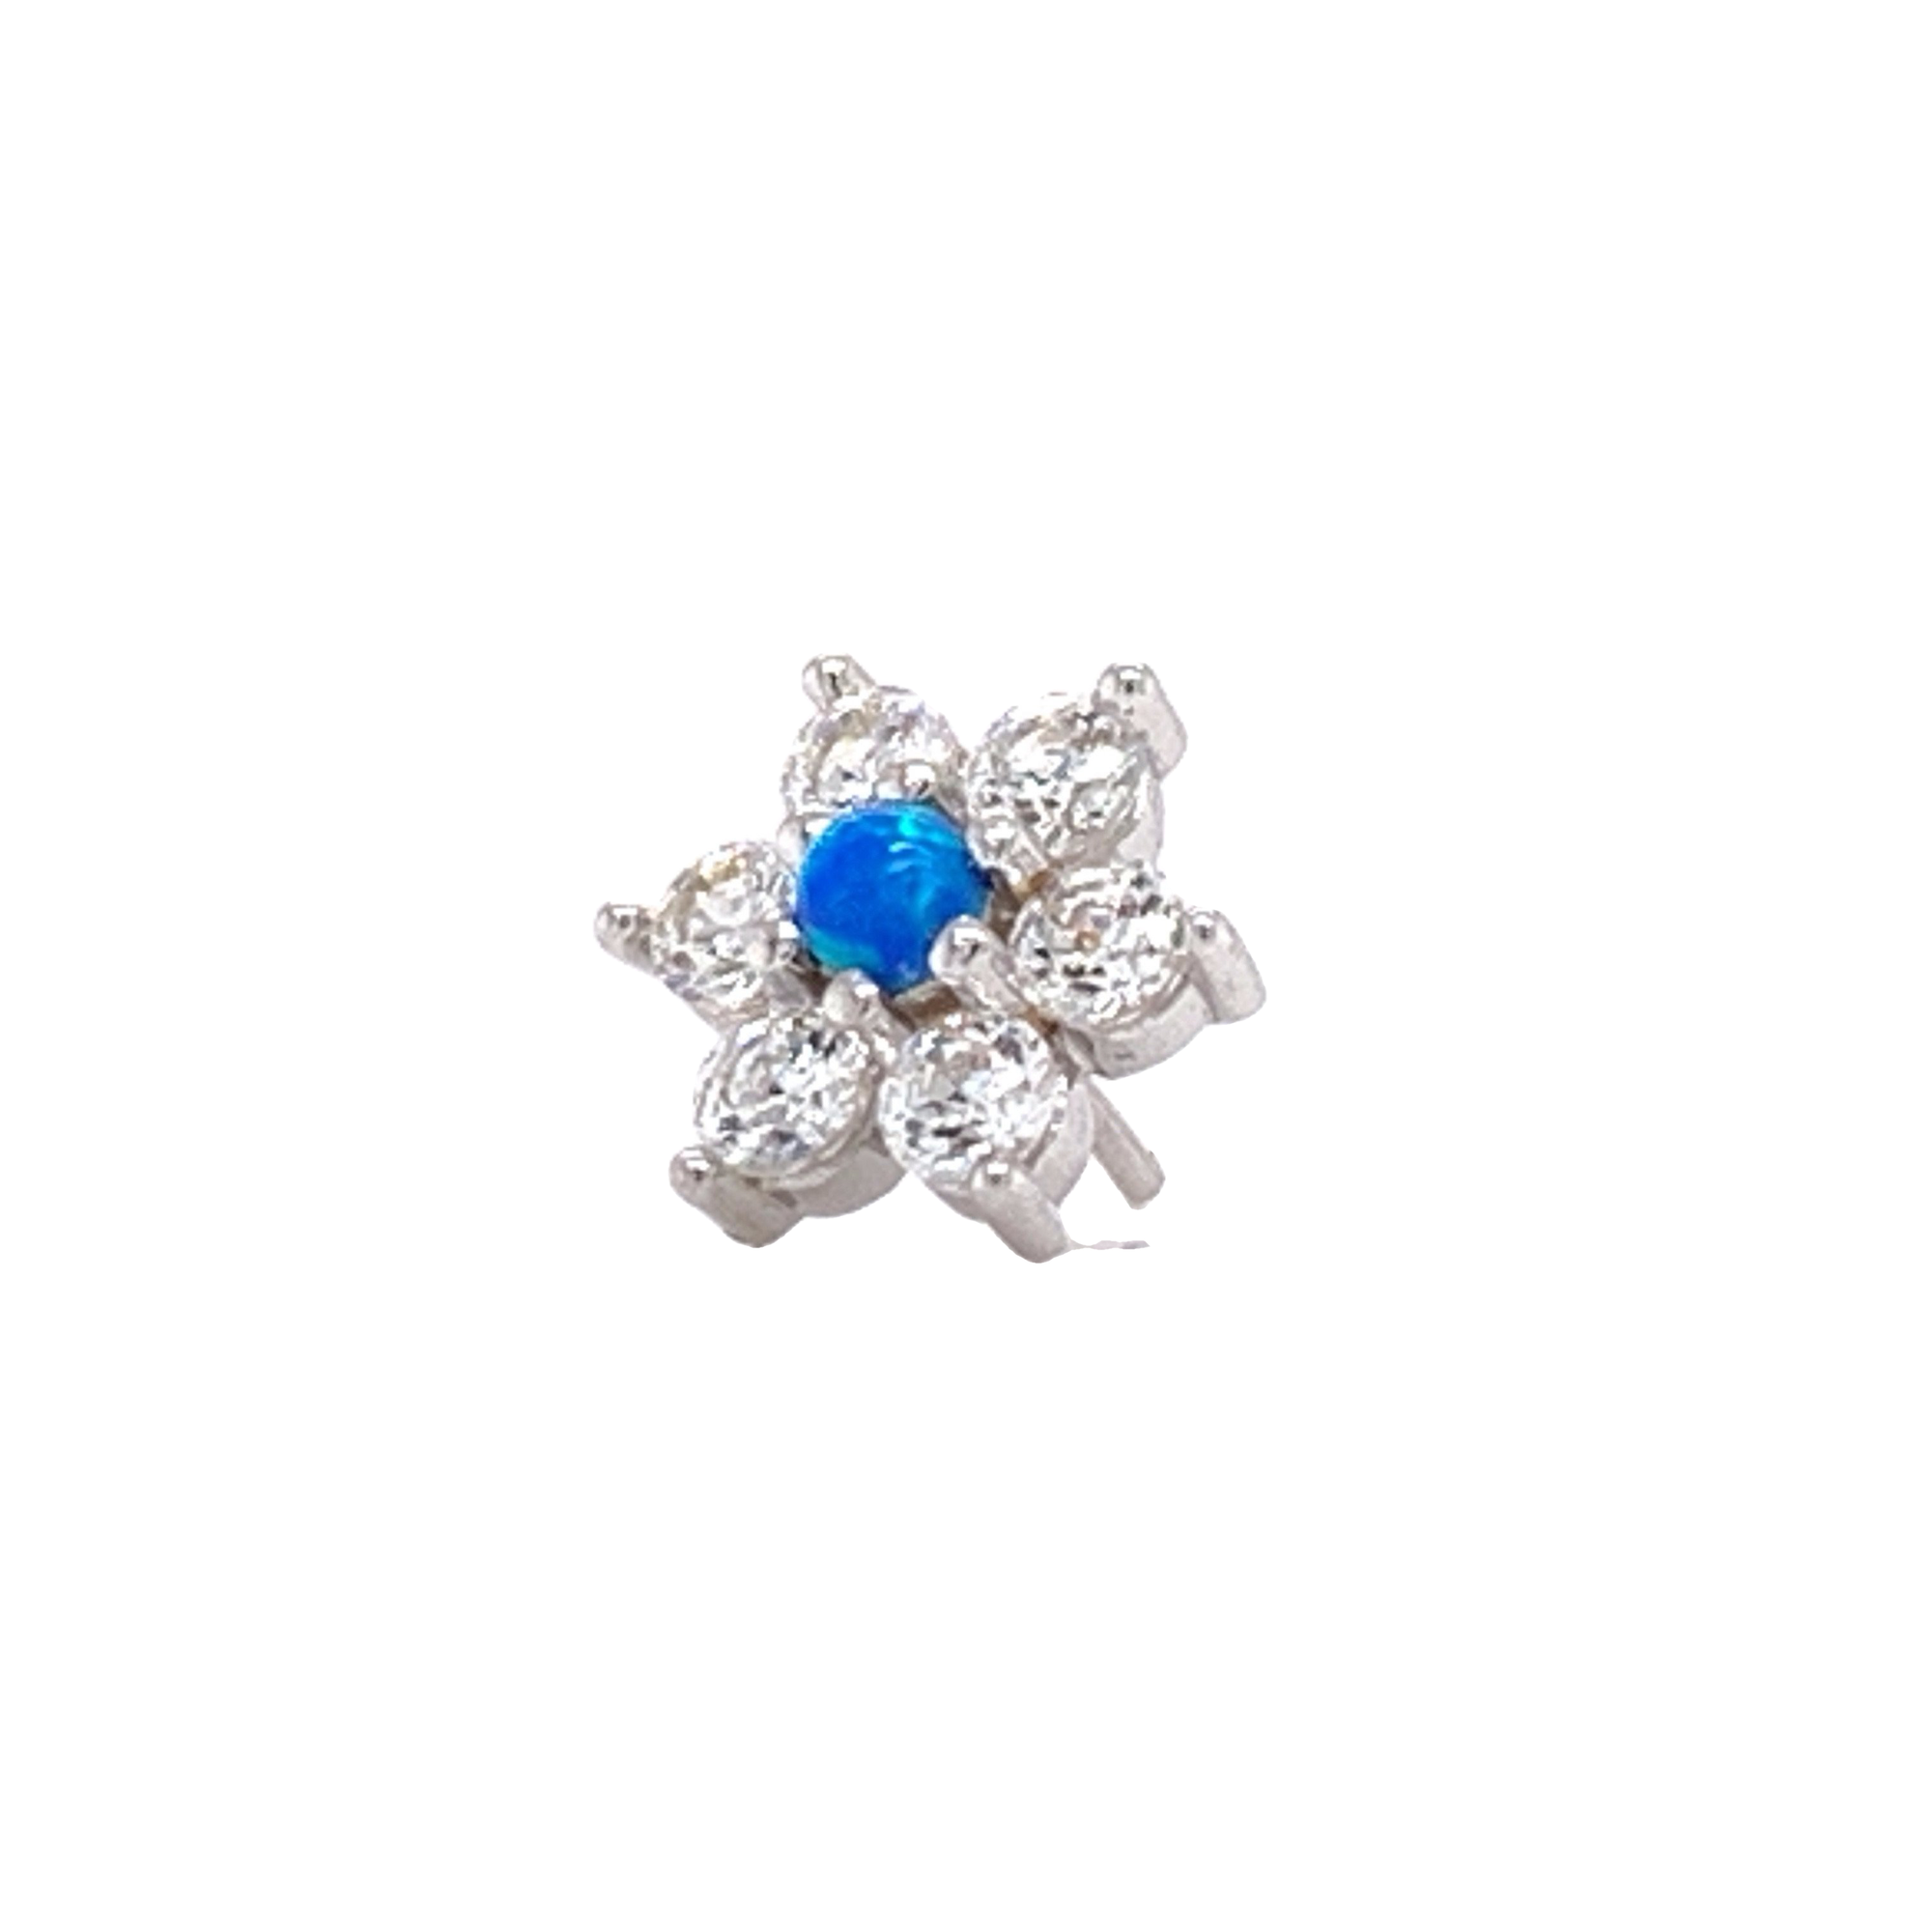 14Ct White Gold Flower With Swarovski & Blue Opal Attachment